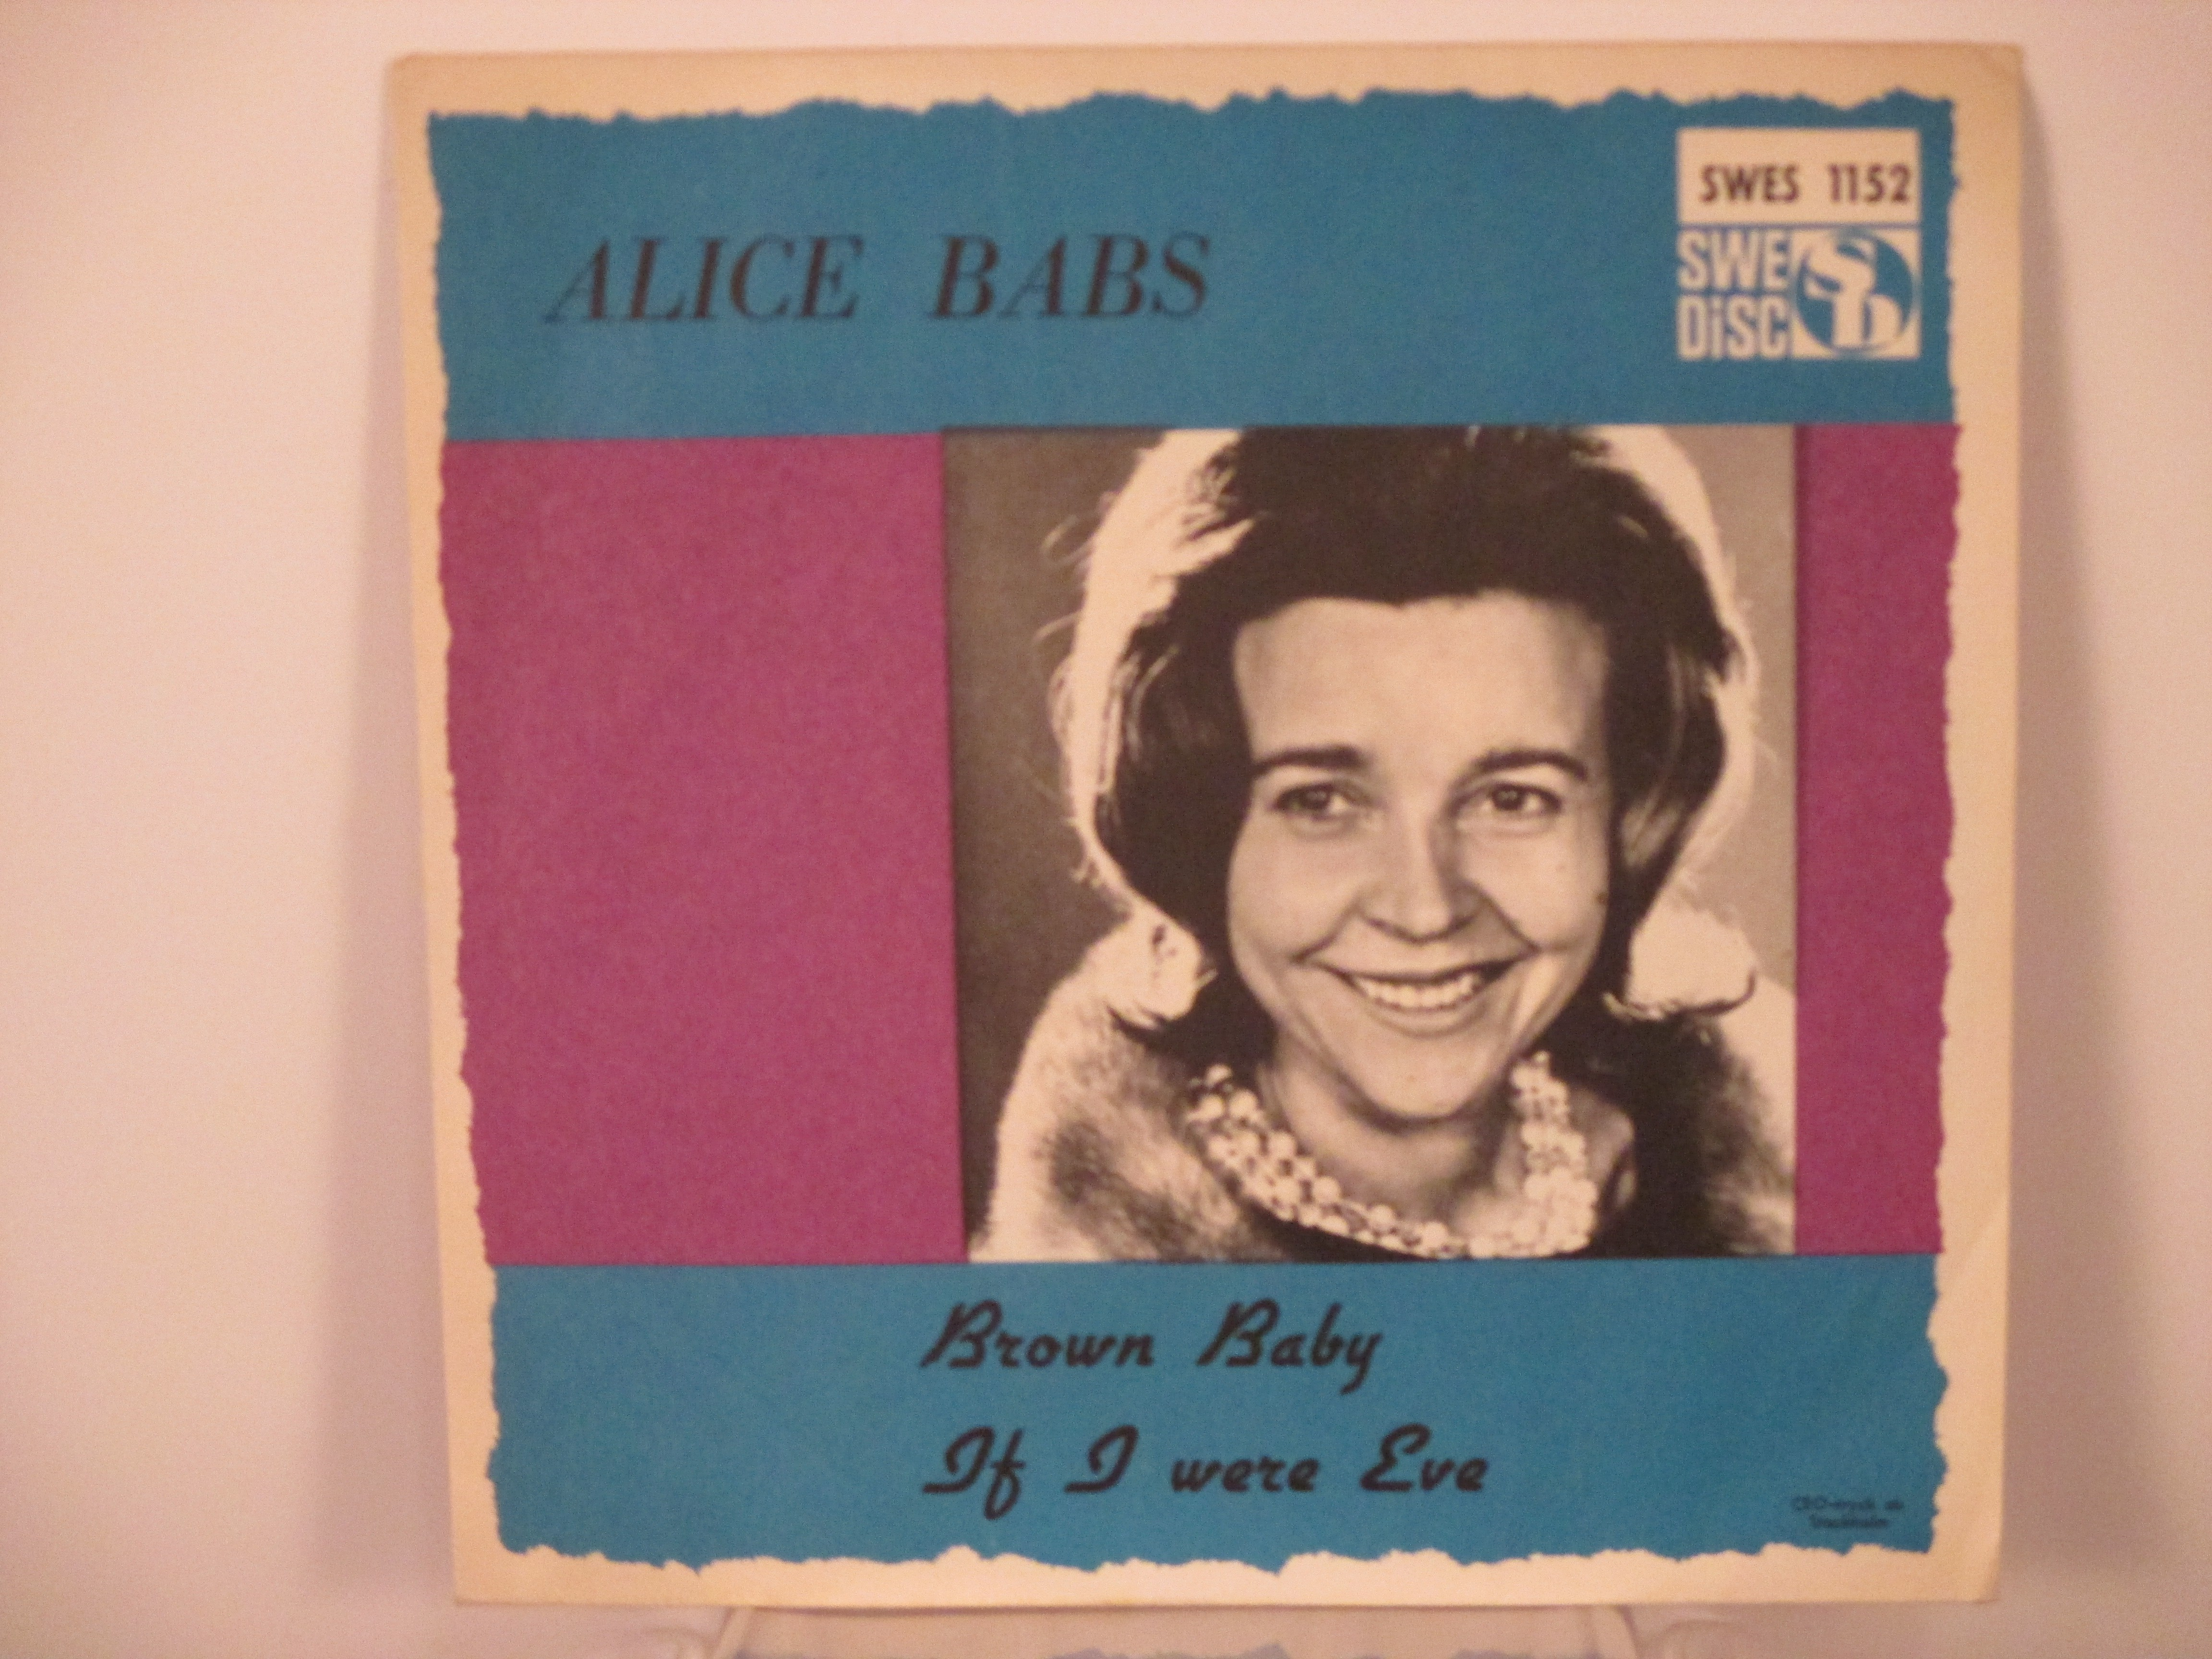 ALICE BABS : Brown baby / If I were Eve